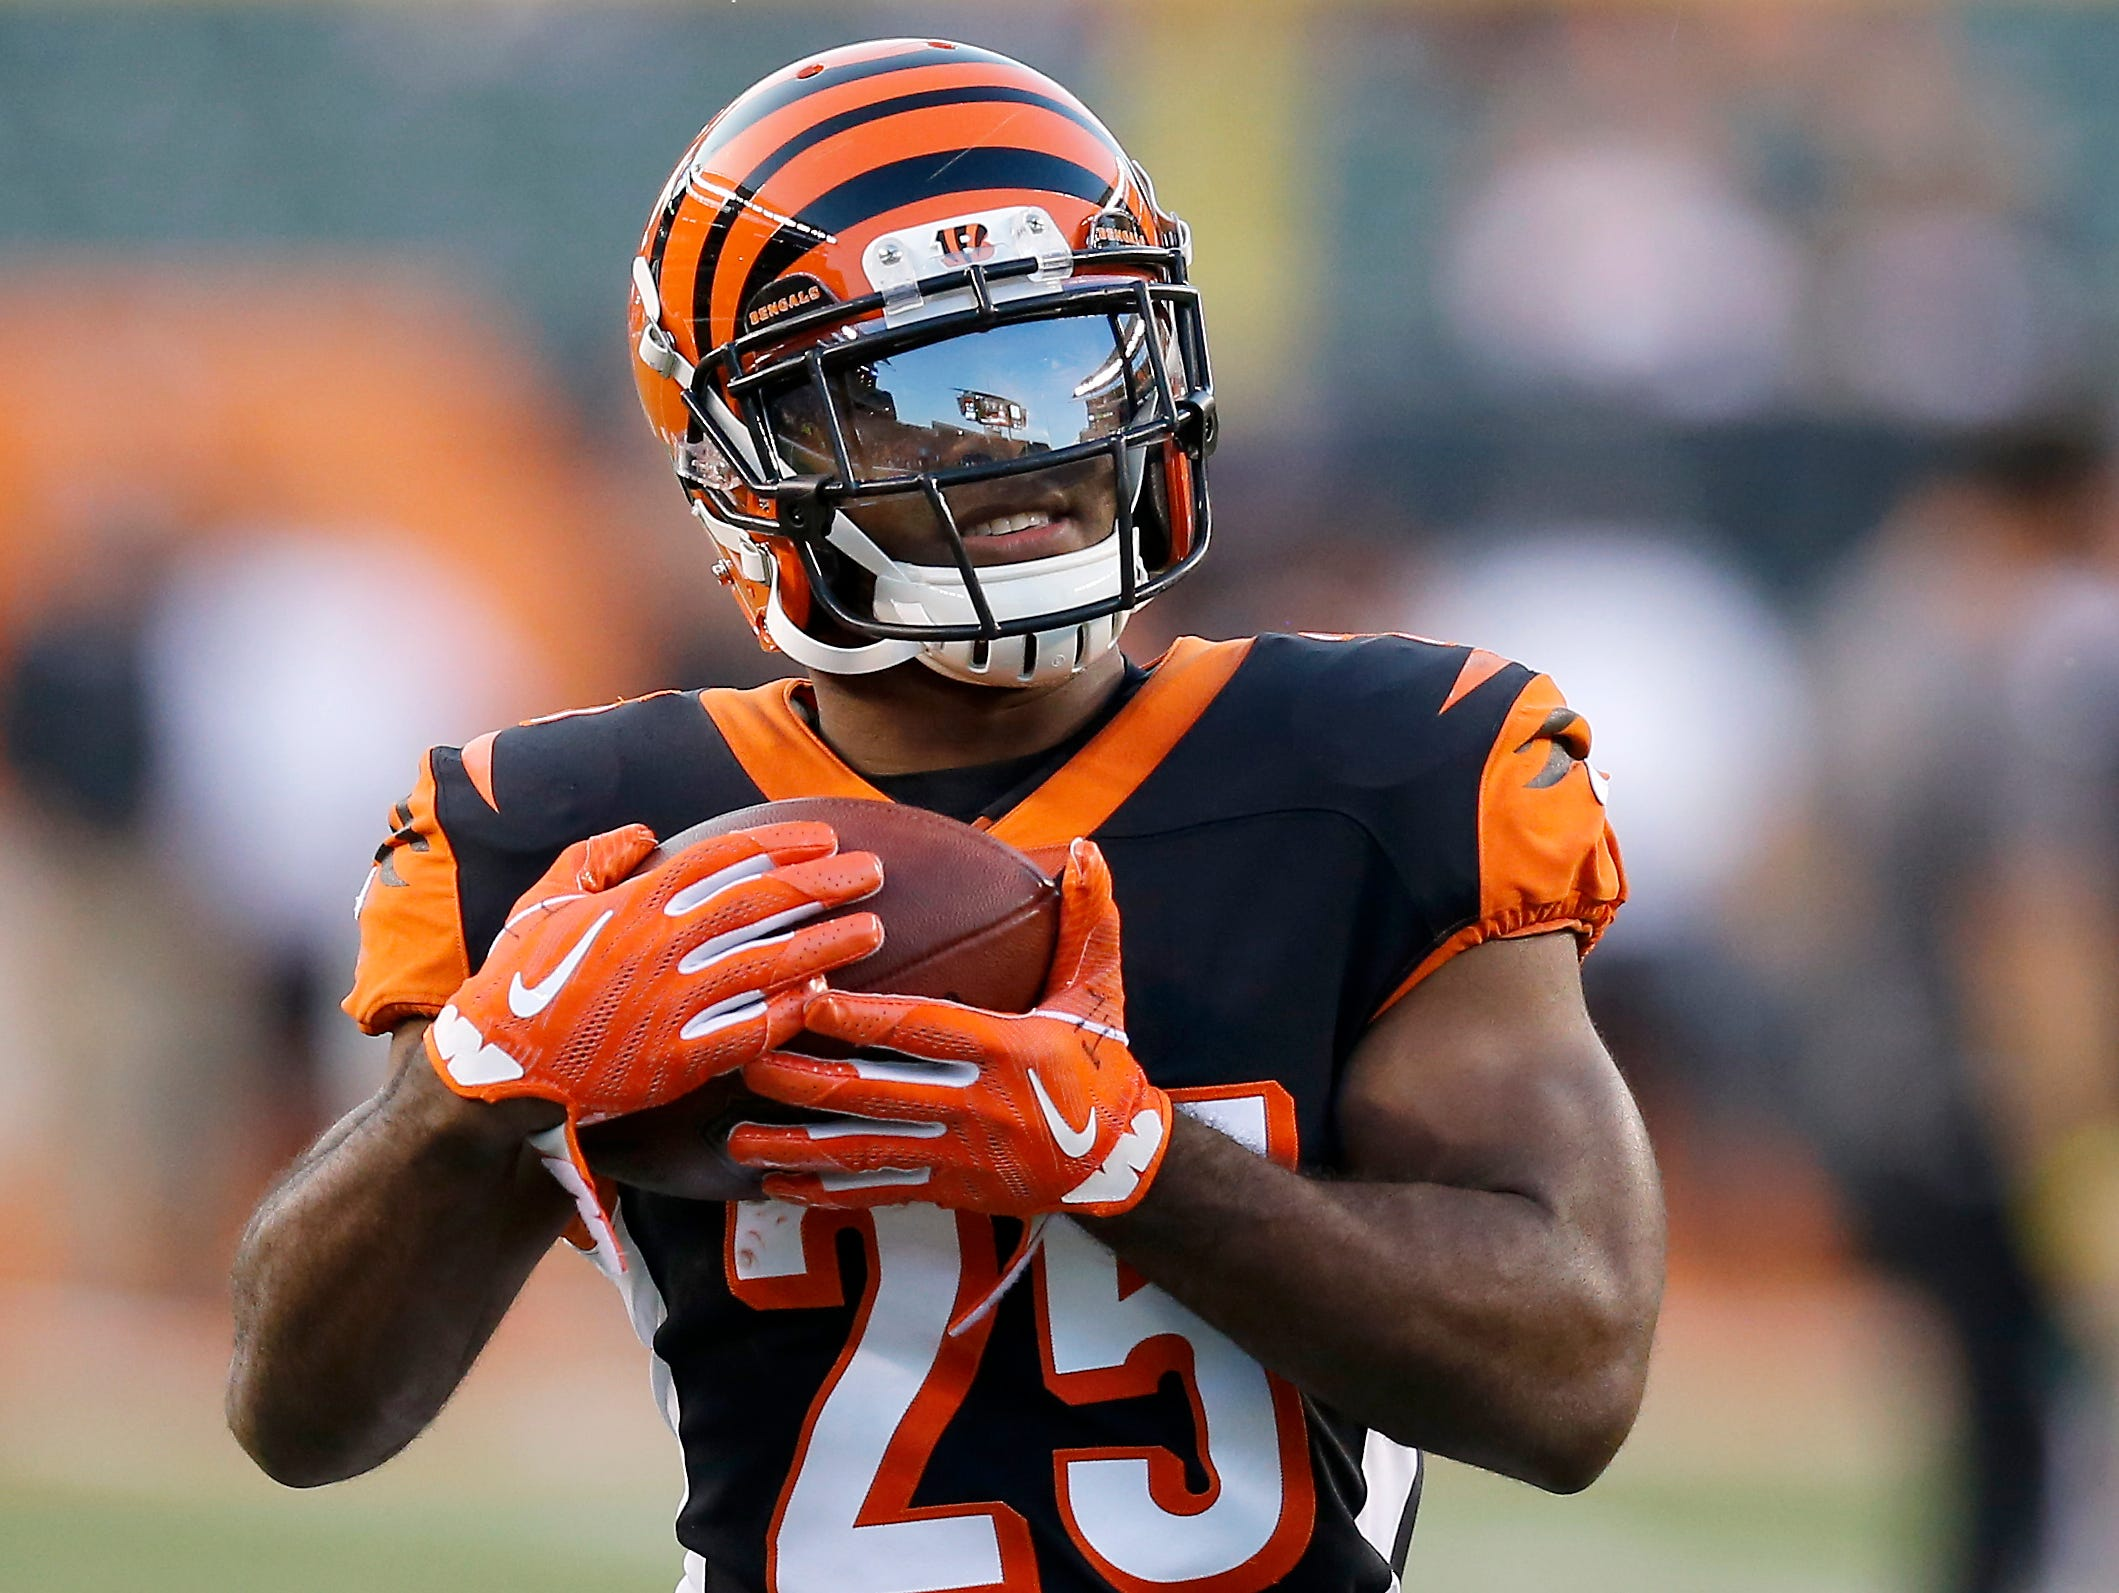 Cincinnati Bengals running back Giovani Bernard (25) catches a pass during pregame warmup before the NFL Week 2 game between the Cincinnati Bengals and the Baltimore Ravens at Paul Brown Stadium in downtown Cincinnati on Thursday, Sept. 13, 2018.